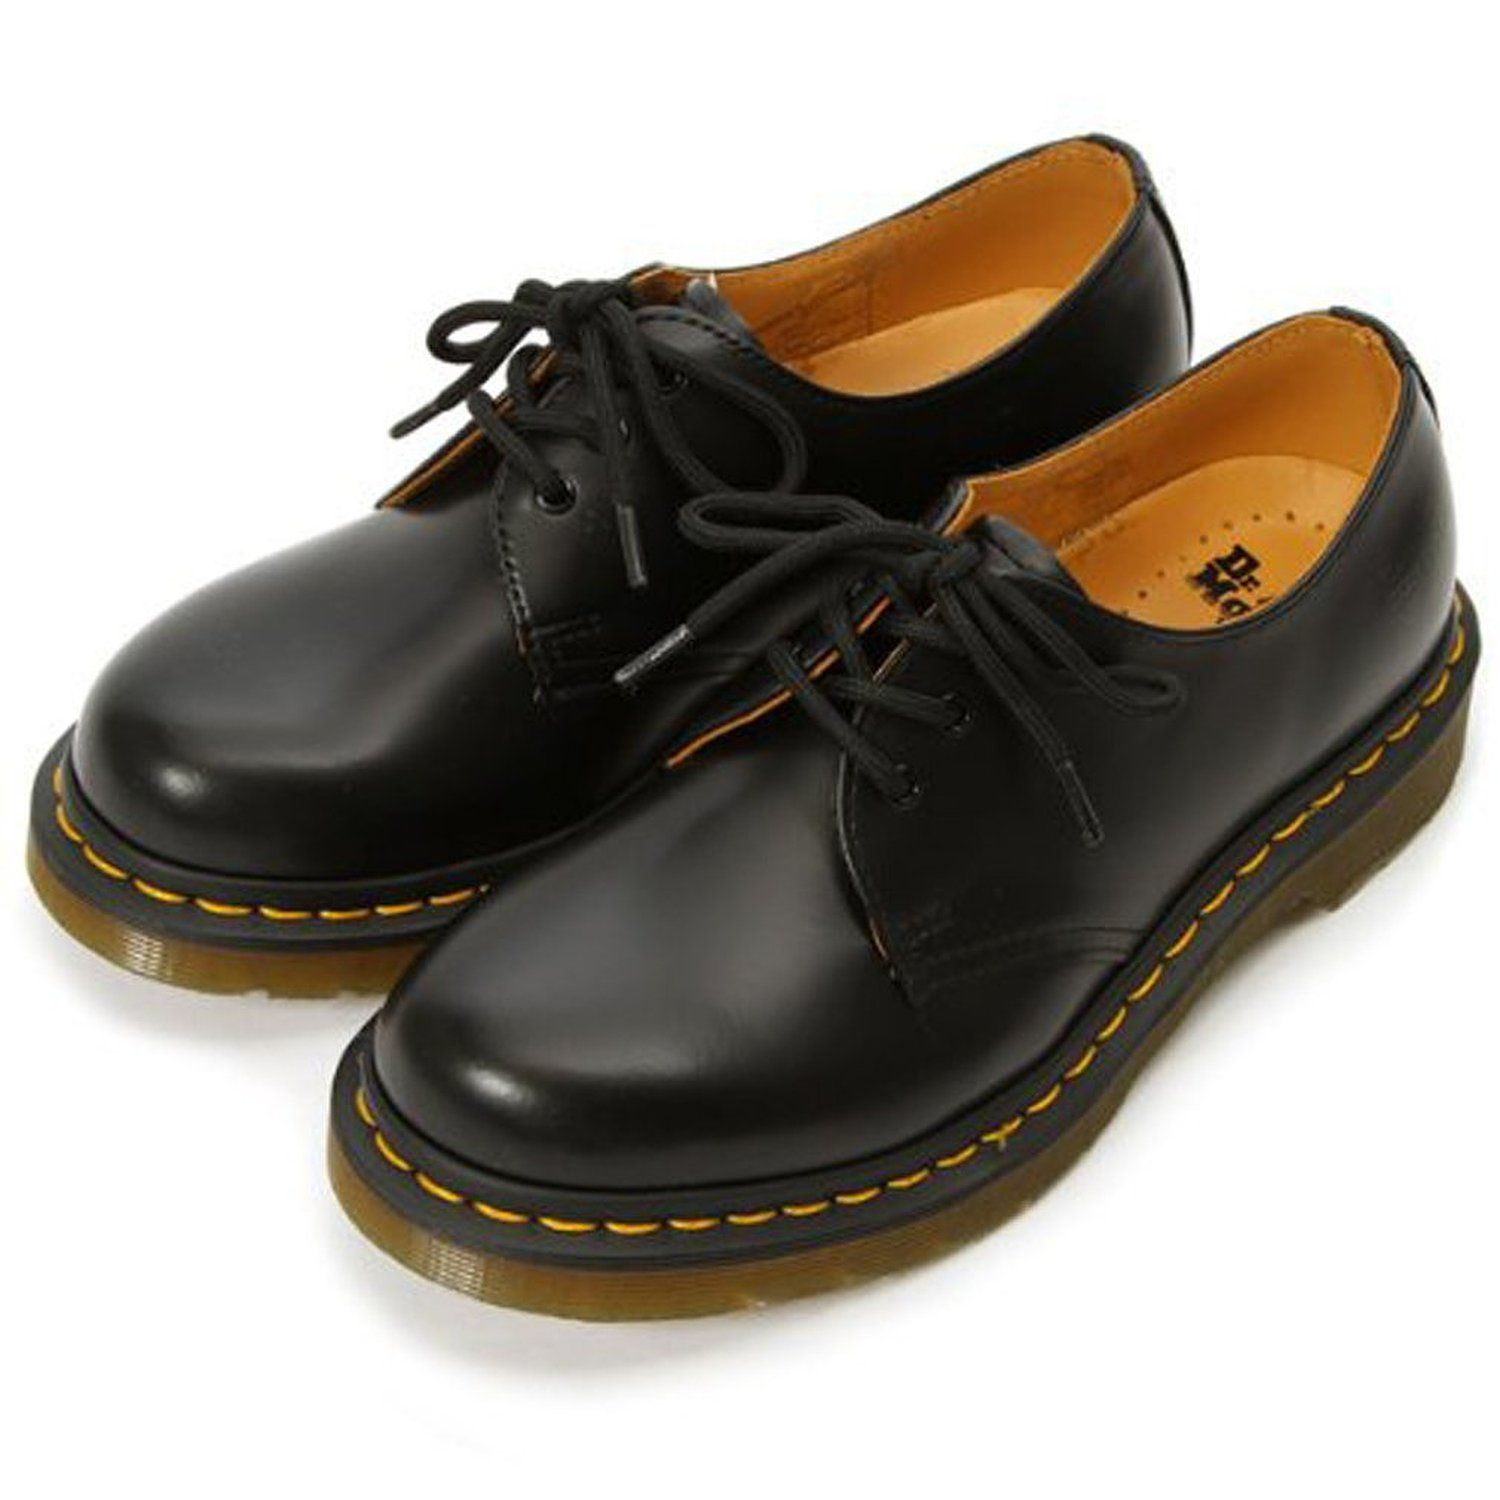 Amazon dr martens 1461 3eye mens gibson shoes for Amazon dr martens